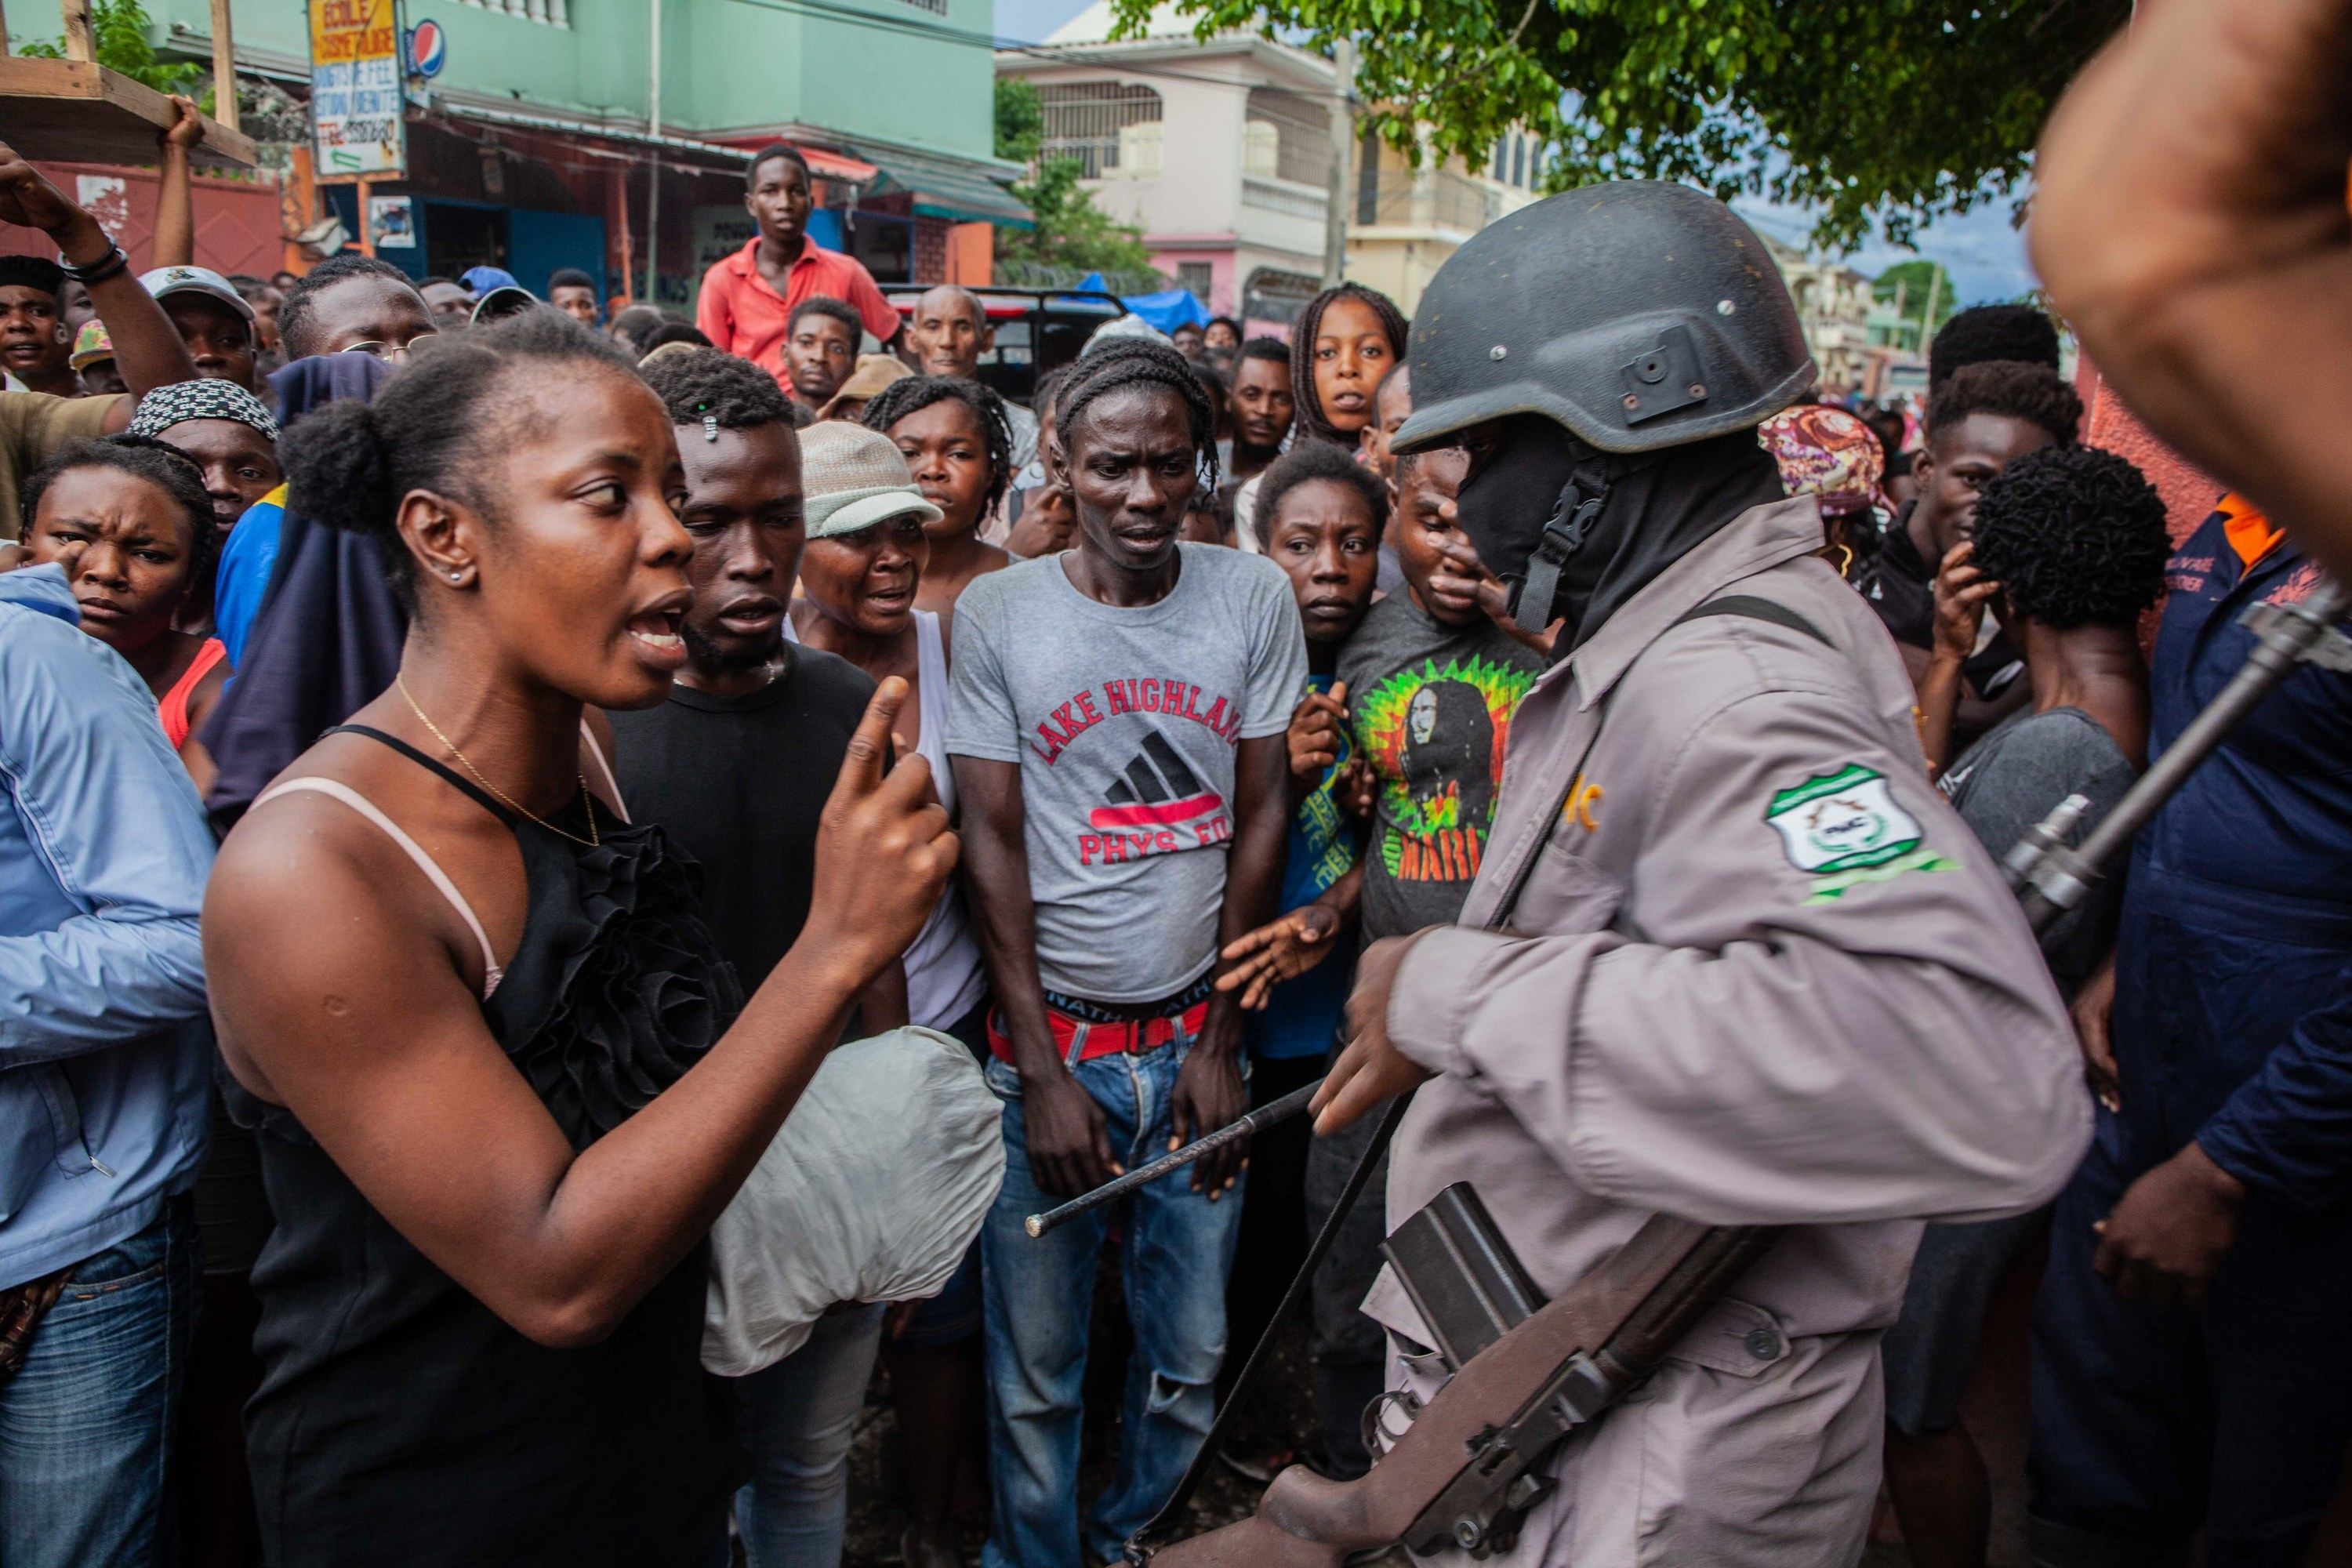 A woman confronts and points a finger at an armed soldier in front of a group of people